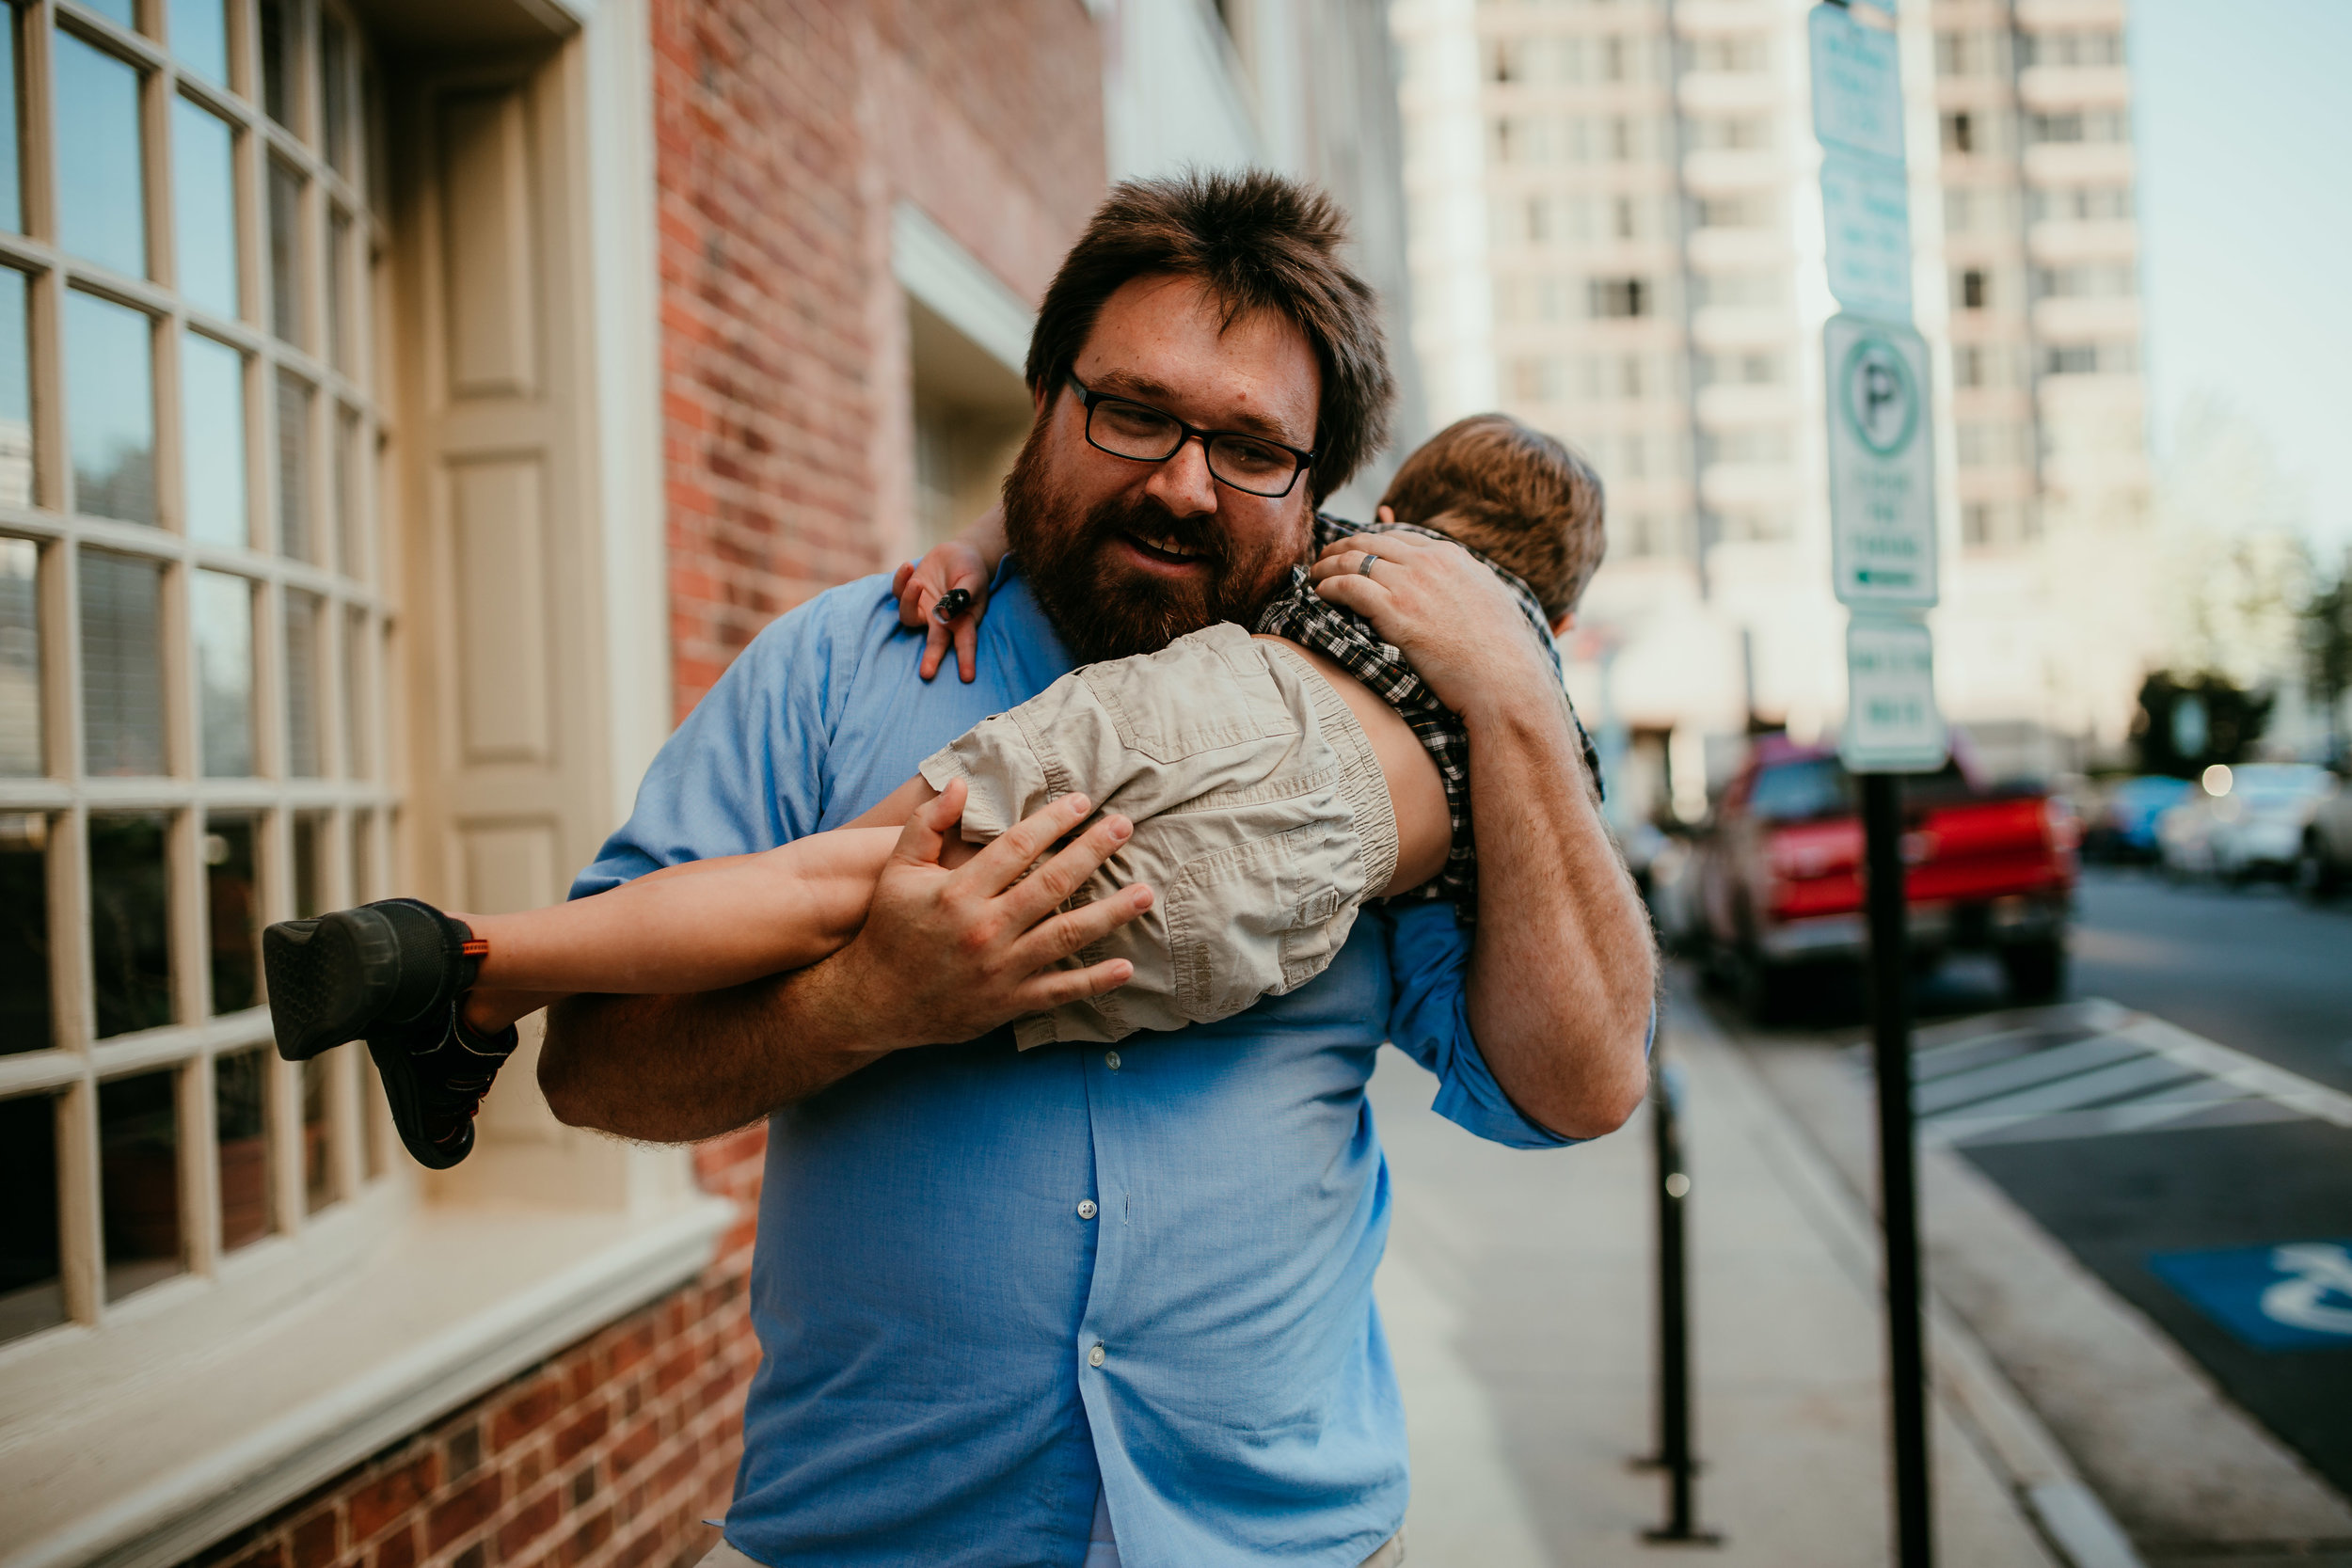 a sweet dad moment during their downtown durham, NC family photography session | Hanna Hill Photography | Raleigh birth and family photographer